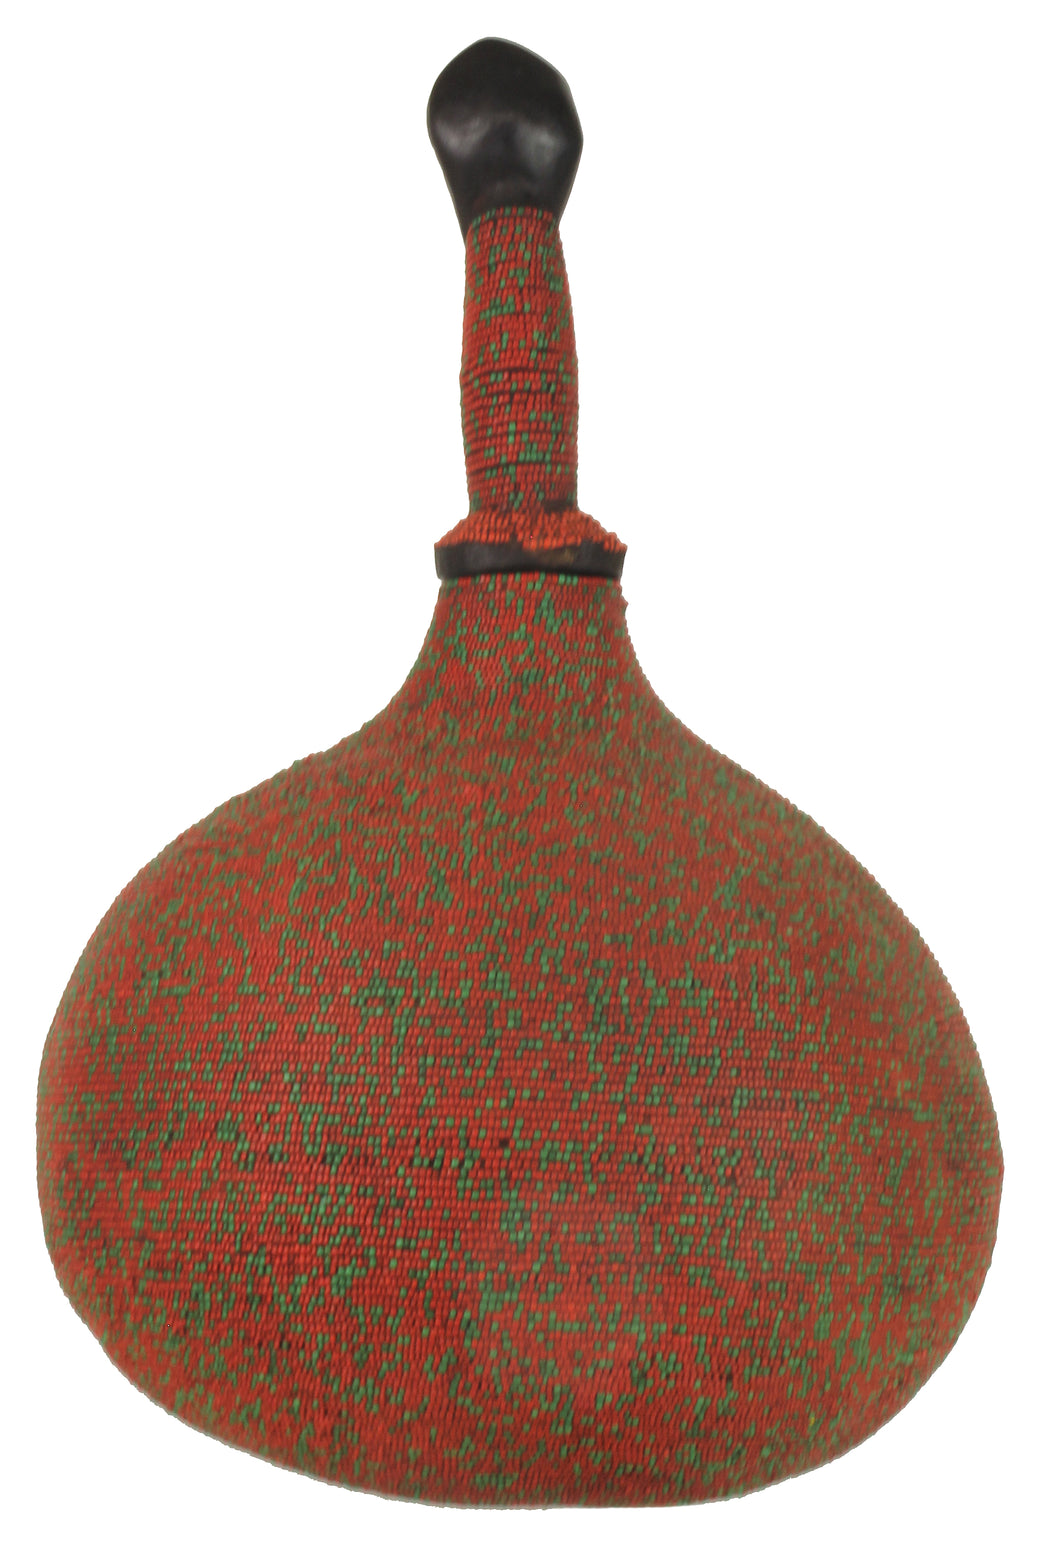 Beaded Decor Gourd from Congo, Africa - Red/Green - Niger Bend